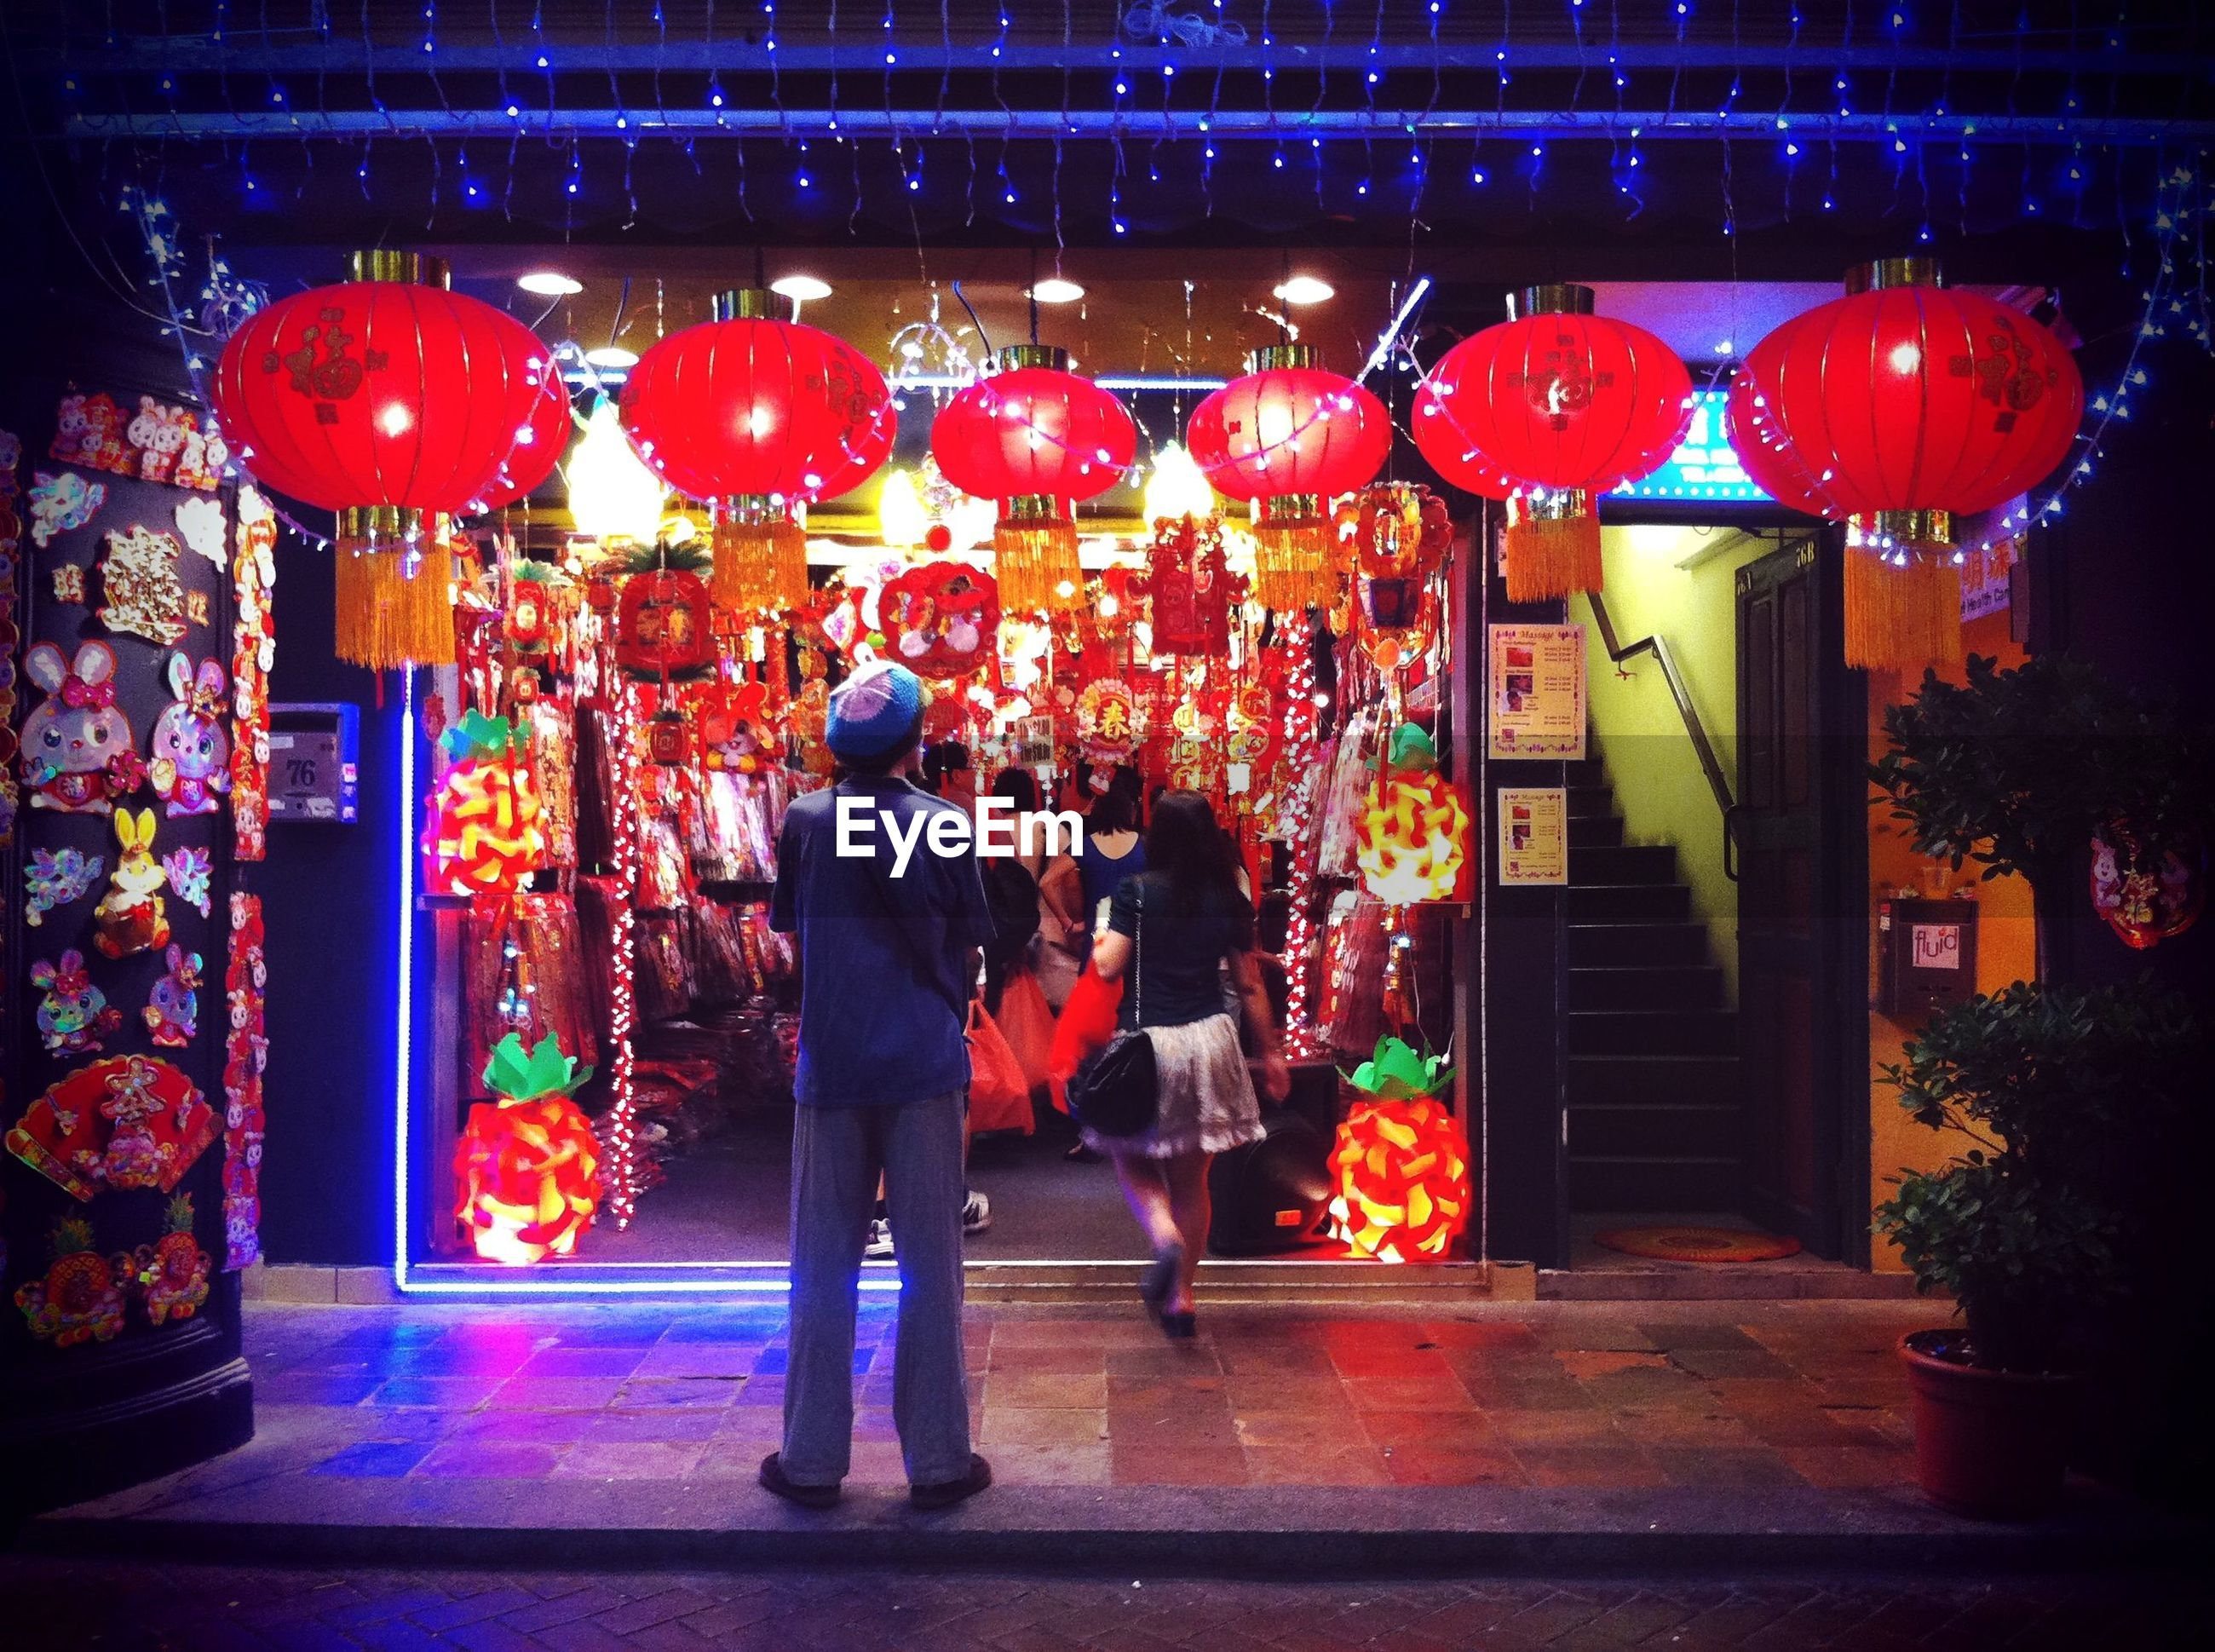 illuminated, night, men, celebration, tradition, person, cultures, red, architecture, built structure, full length, lifestyles, building exterior, leisure activity, decoration, religion, lantern, rear view, standing